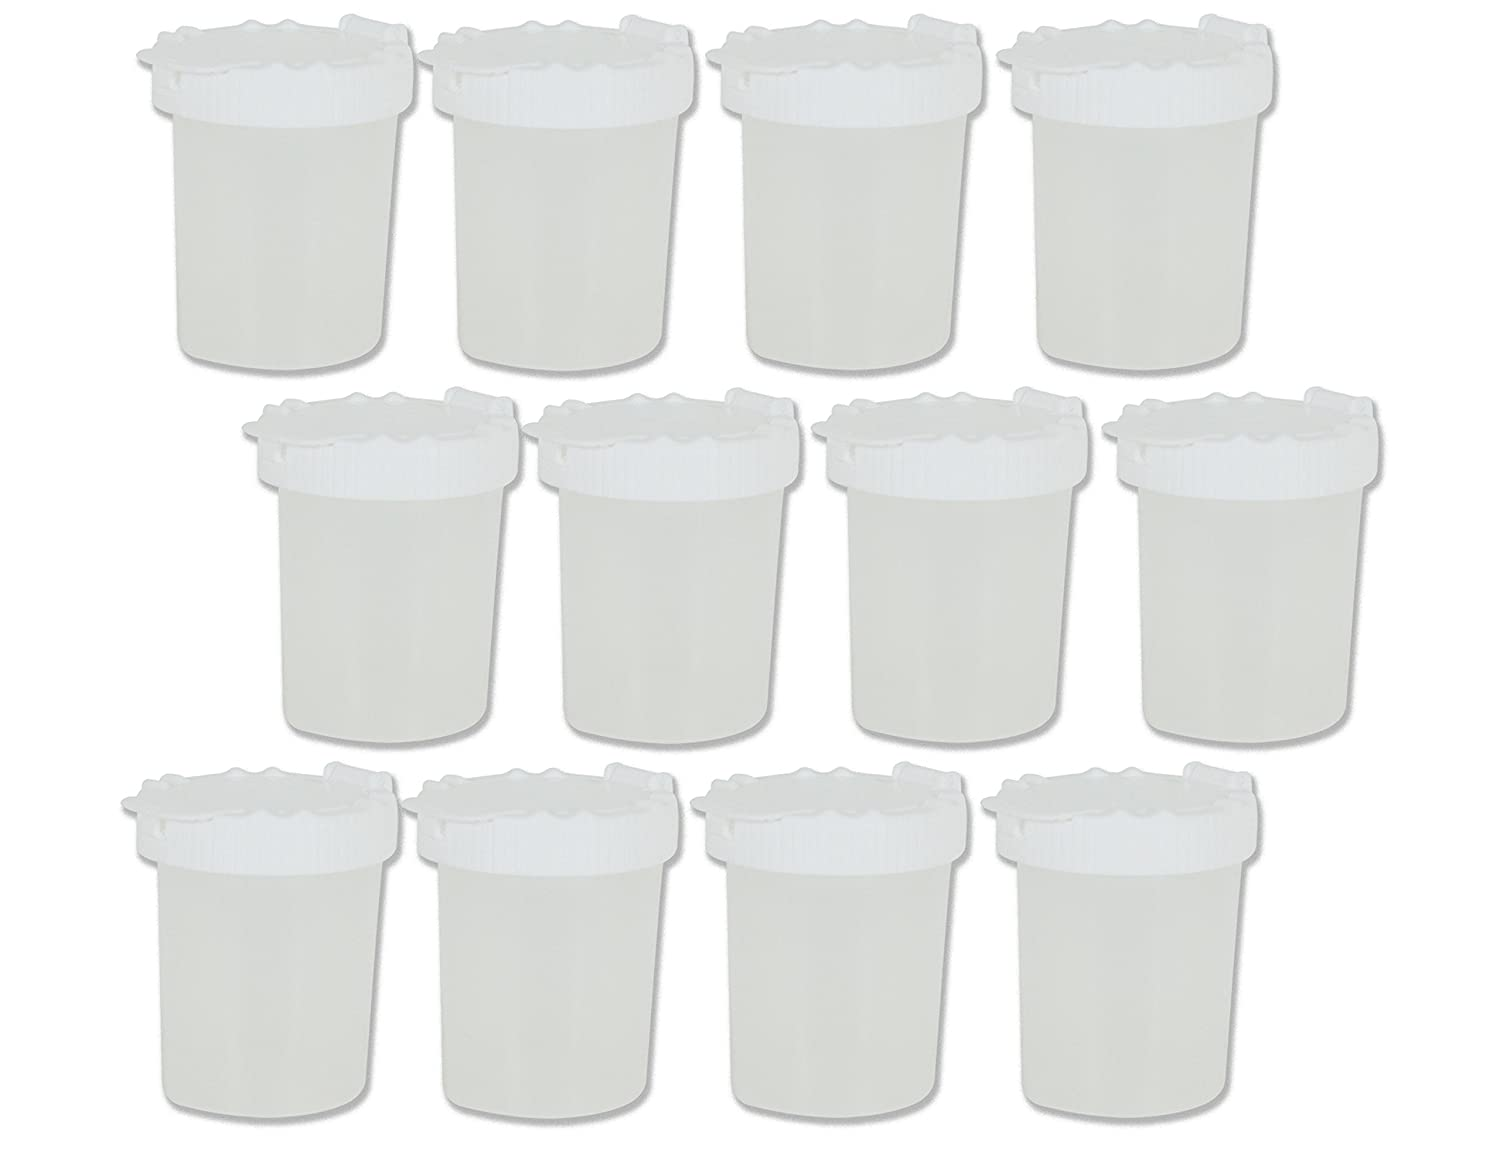 Sargent Art (SARAD) 22-1697 Non-Spill Paint Cups, White